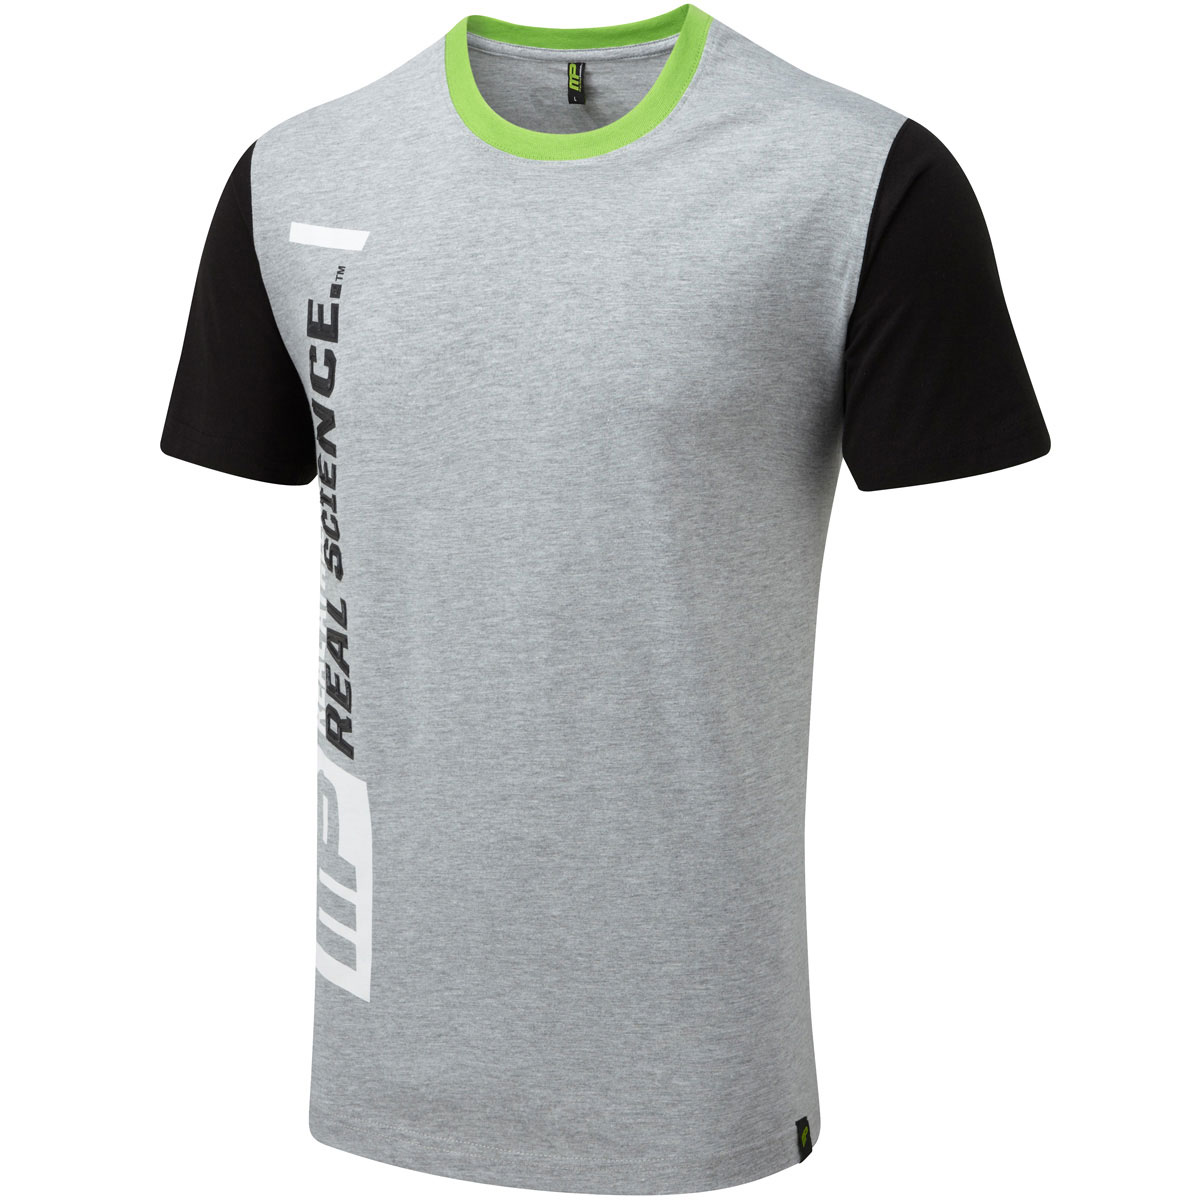 25 off rrp musclepharm short sleeve printed t shirt gym for Gym printed t shirts